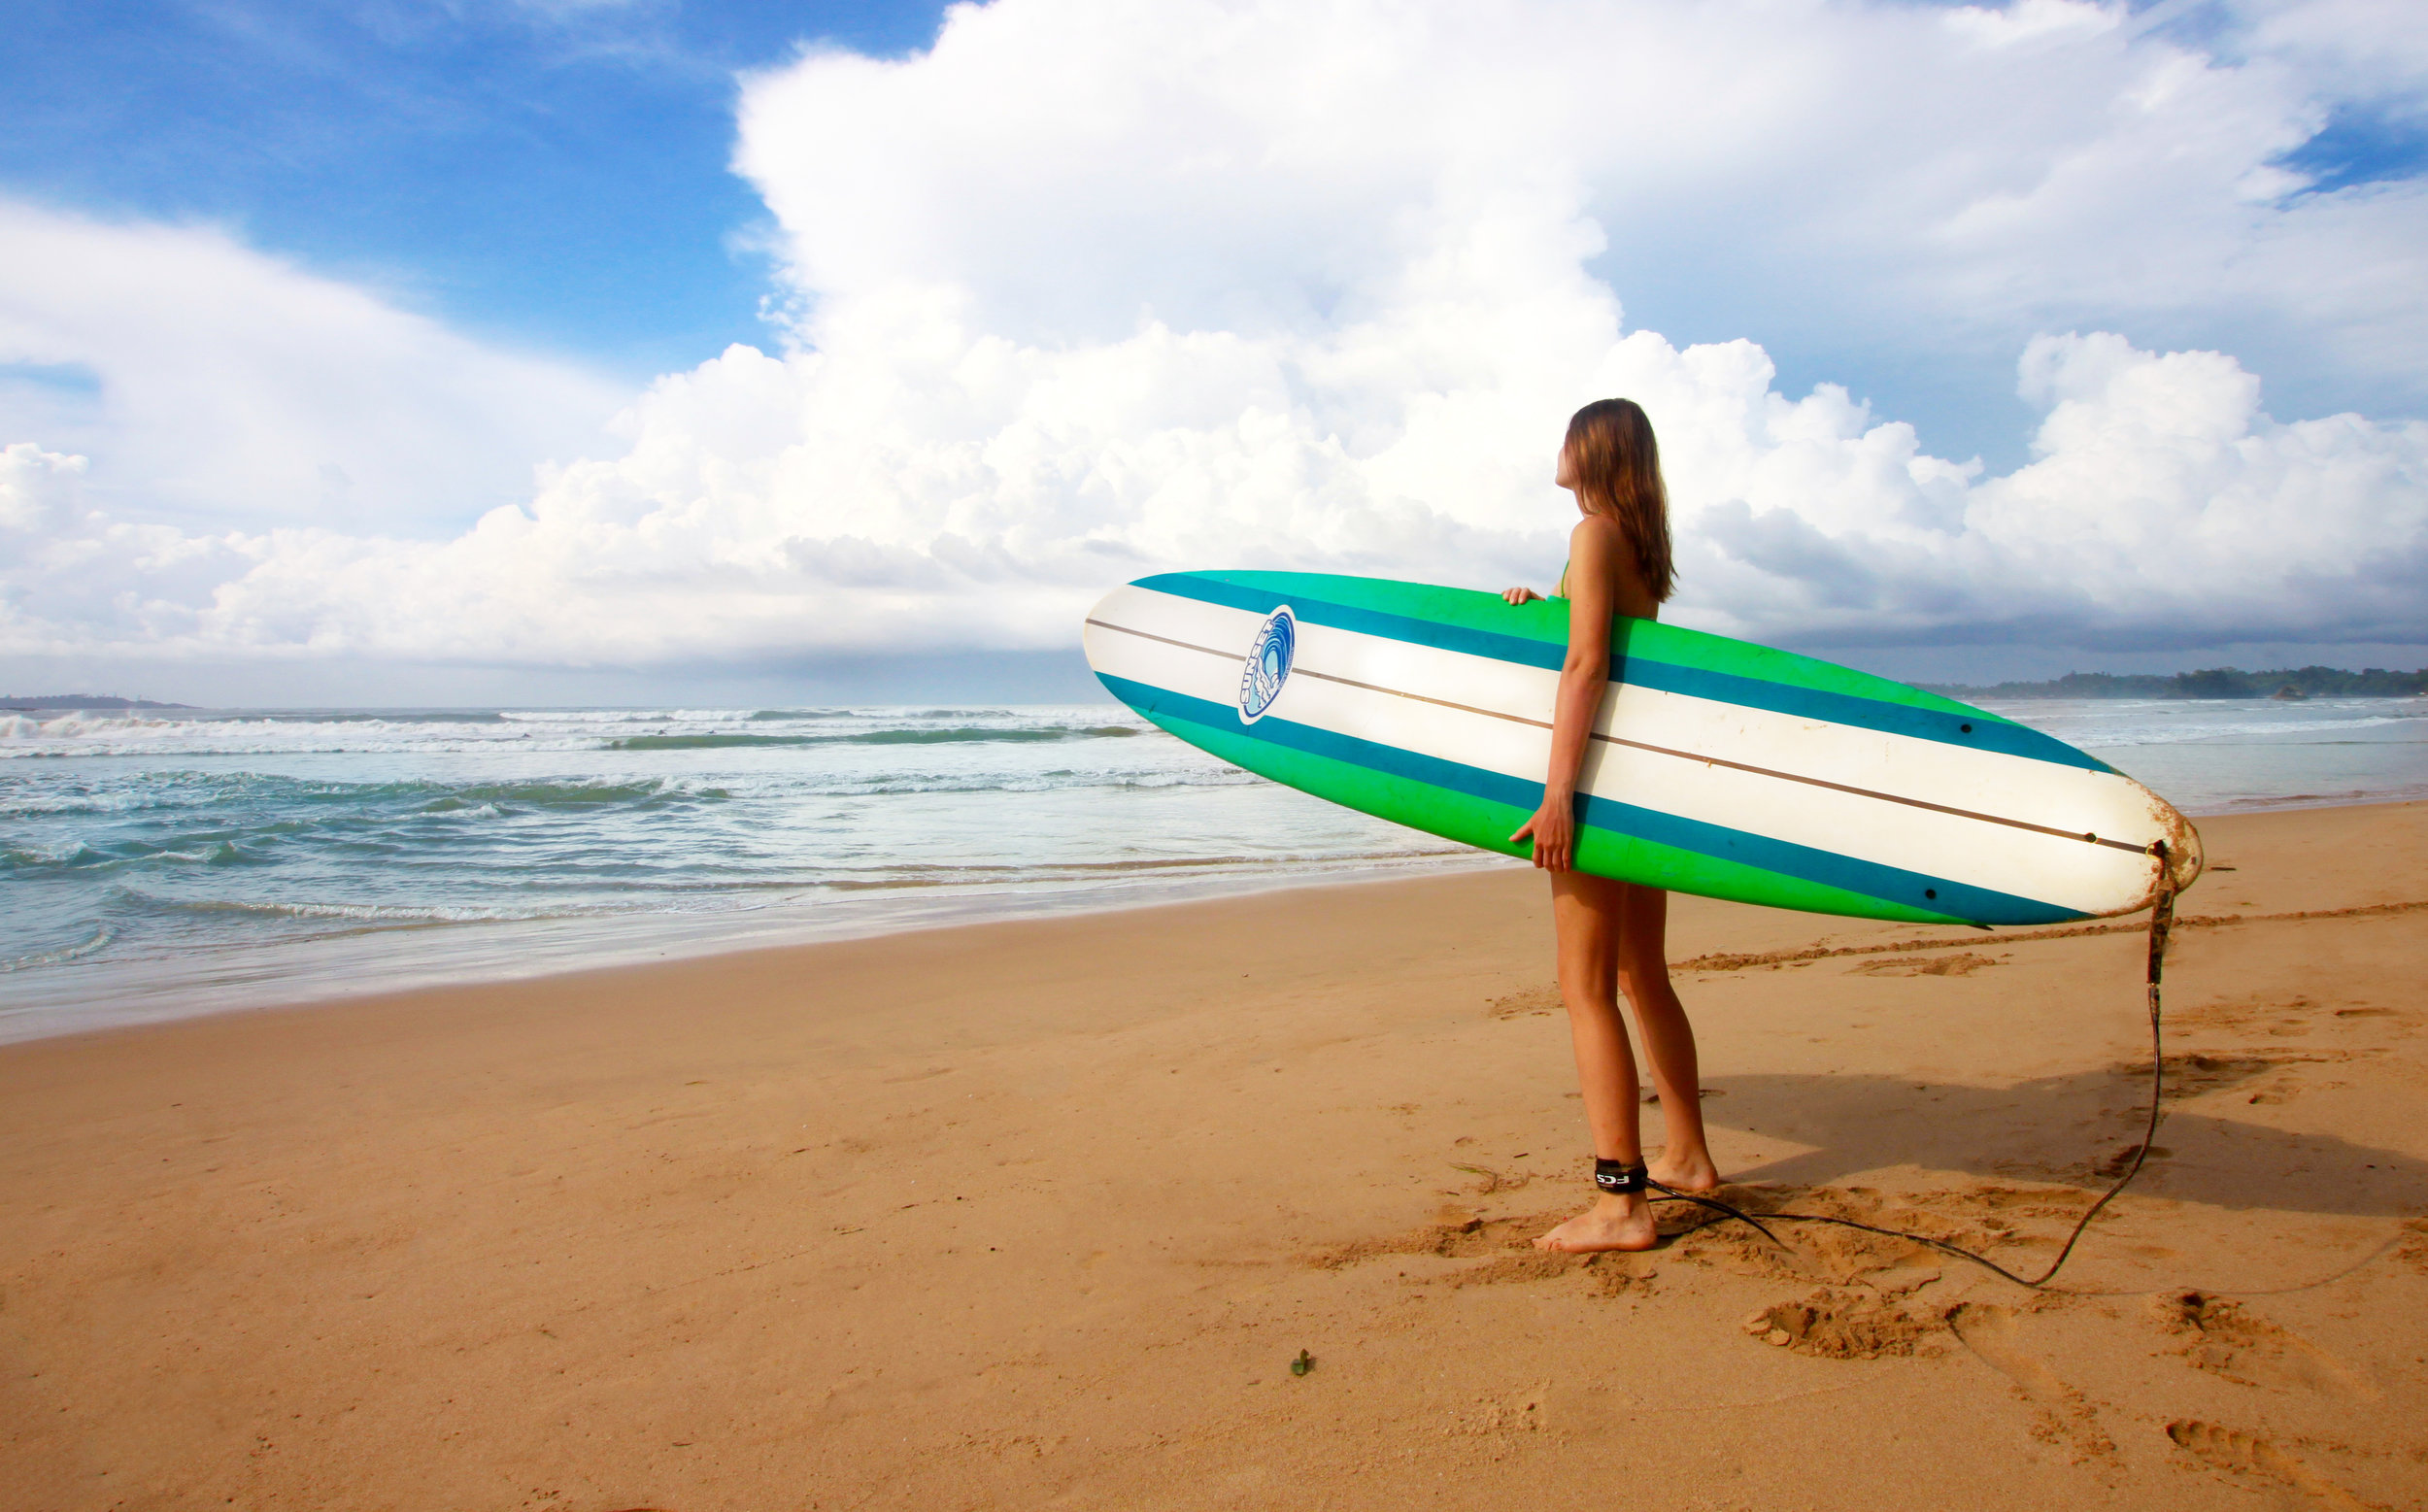 7 Activities for Idea GIrls to do this Summer from Girls With Ideas (www.girlswithideas.com)